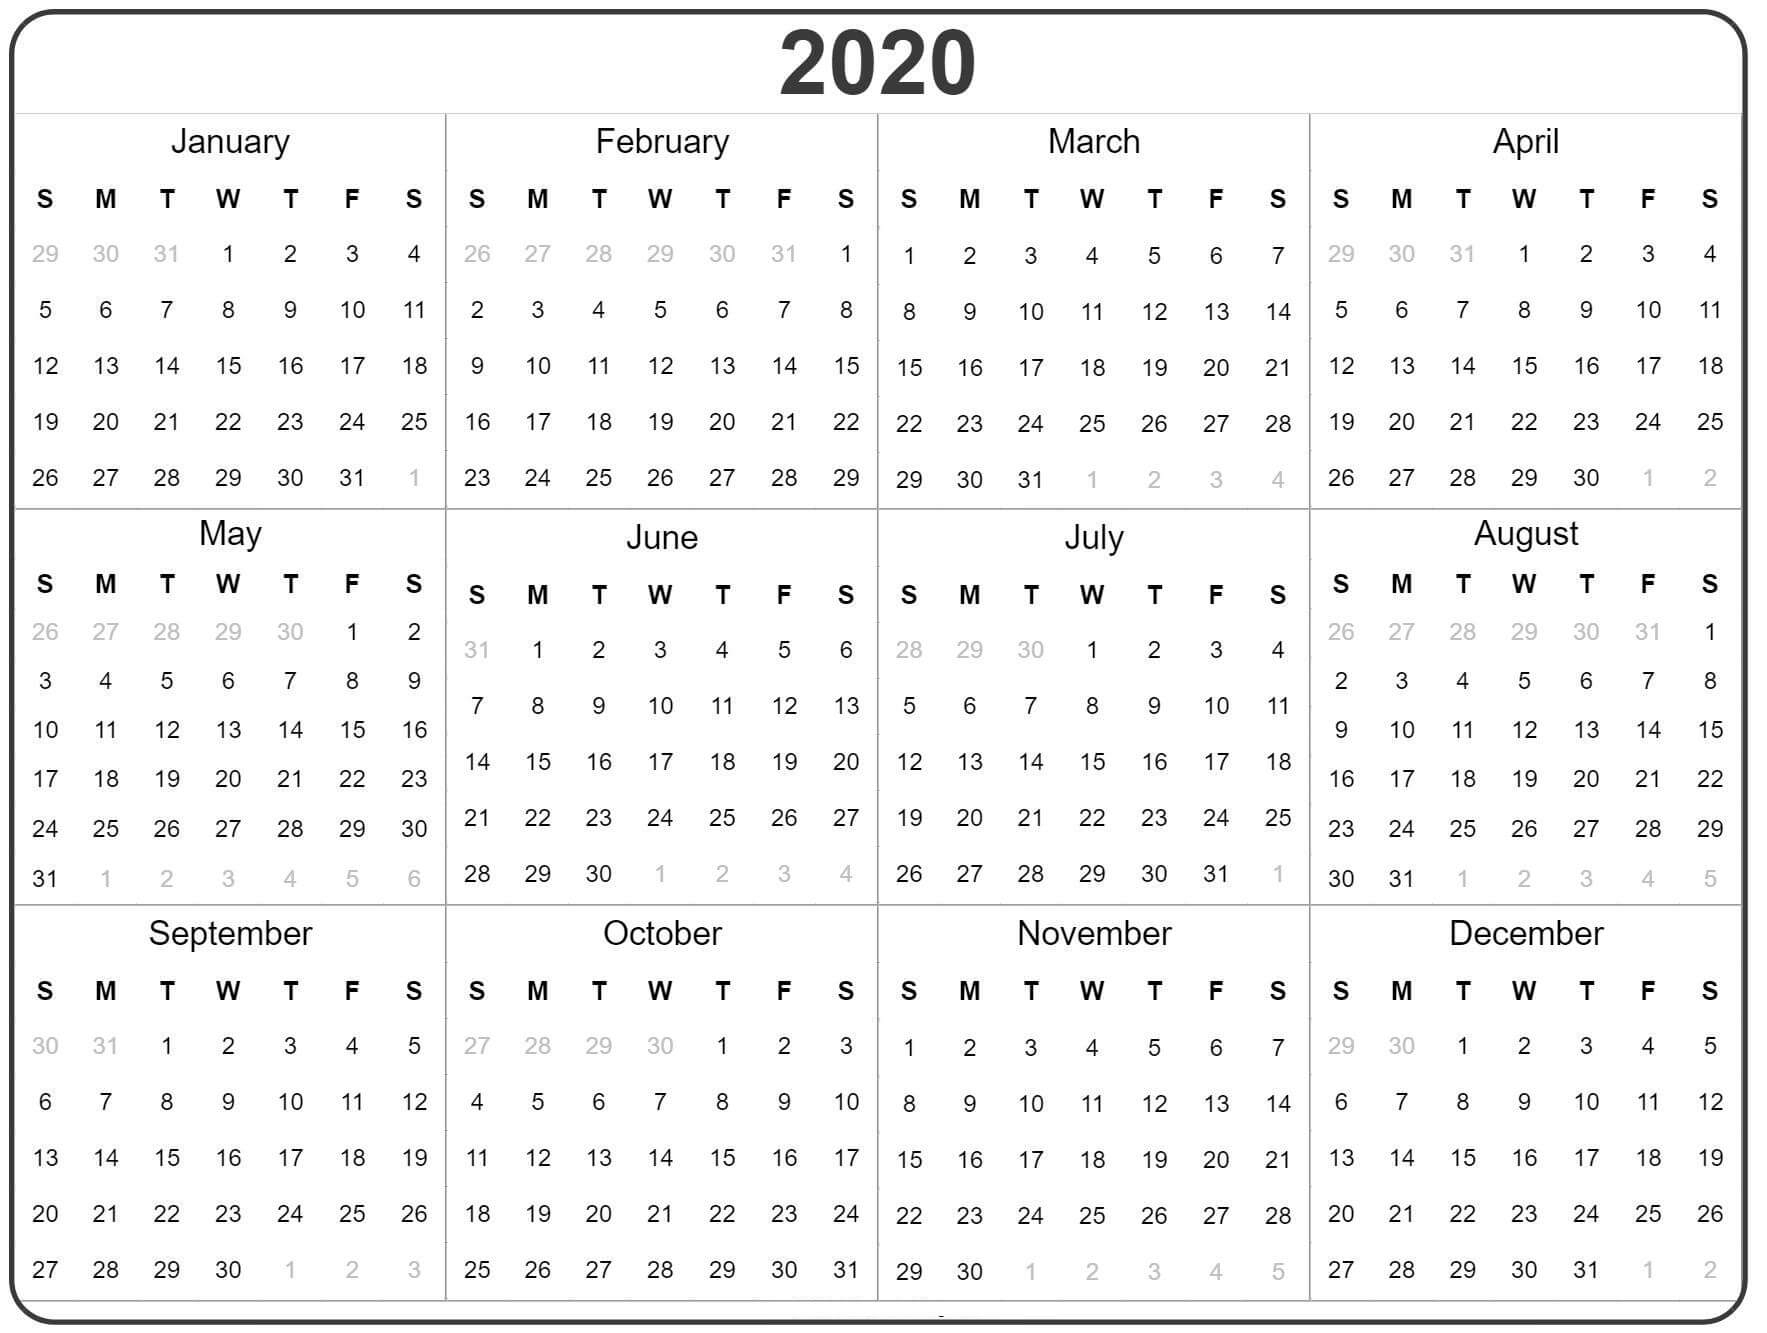 Free Yearly Calendar 2020 With Notes - 2019 Calendars For with regard to 2020 Year At A Glance